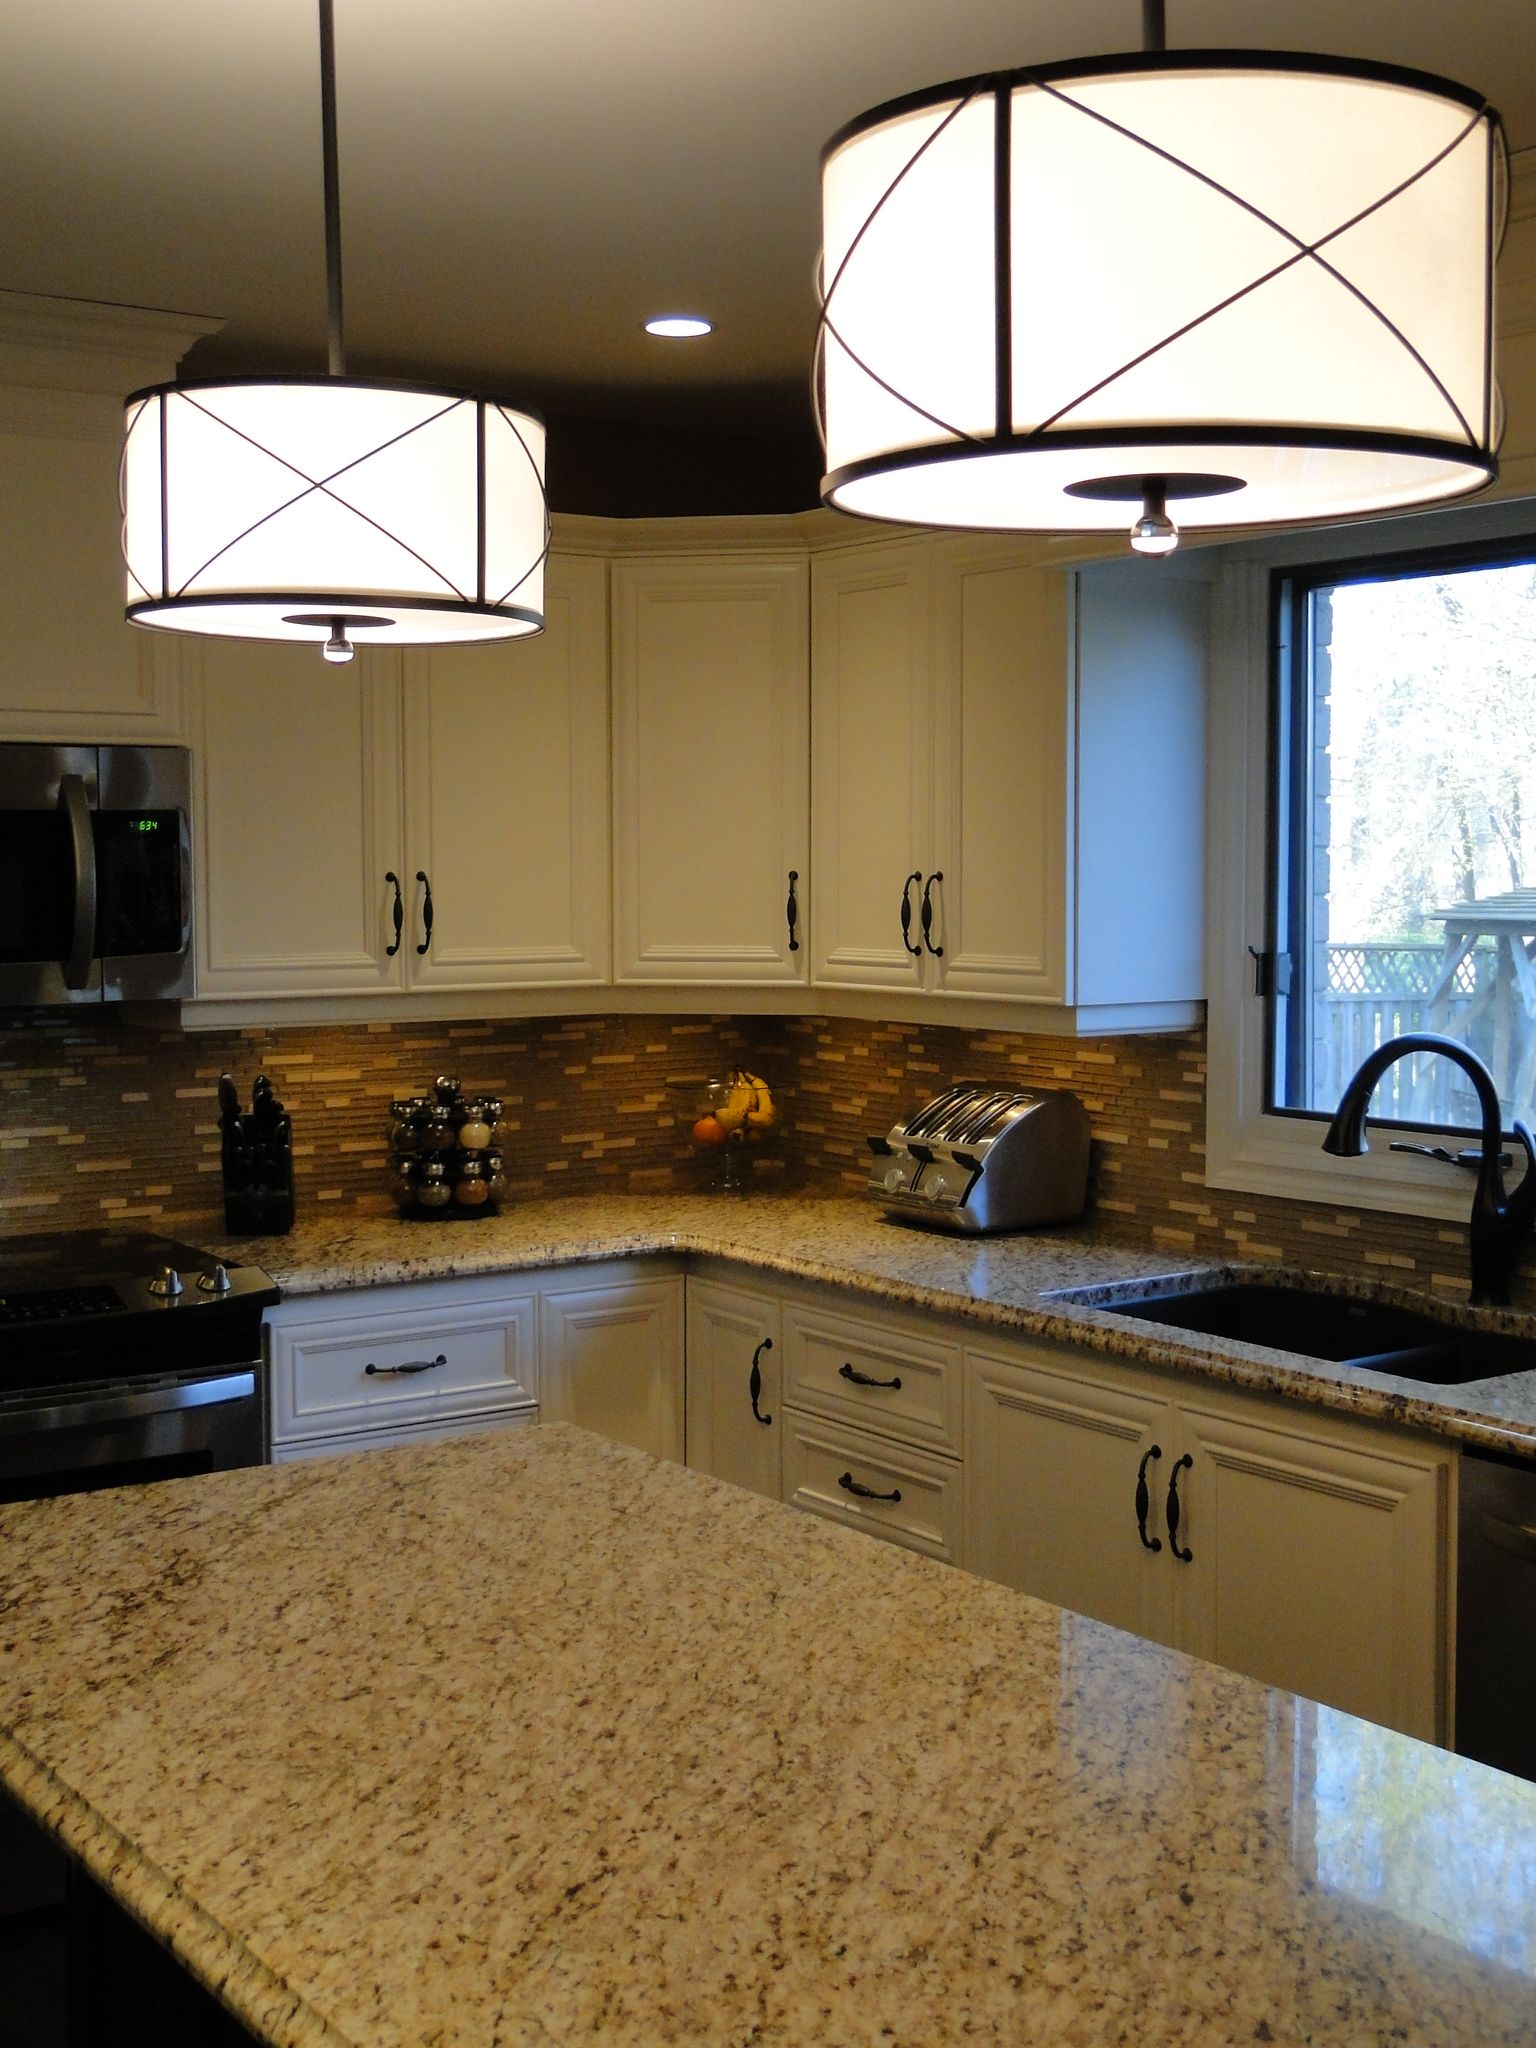 drum pendant lights over the kitchen island could put